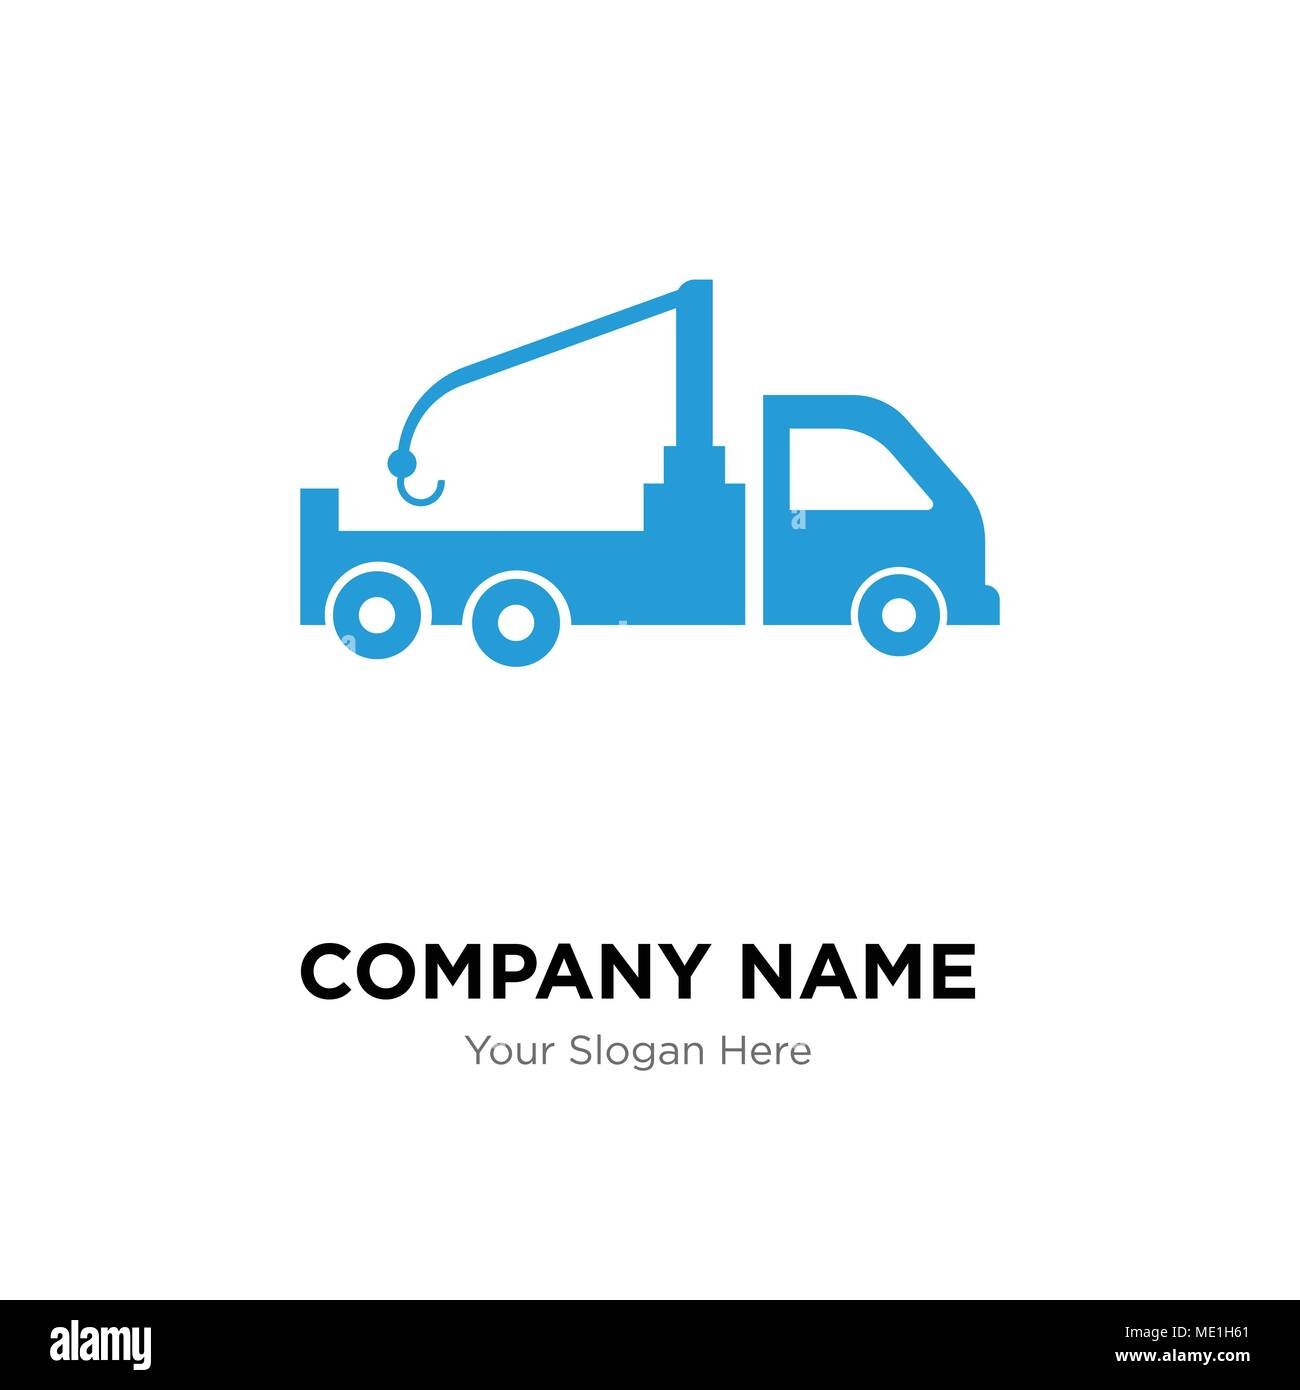 Crane truck company logo design template, Business corporate vector ...